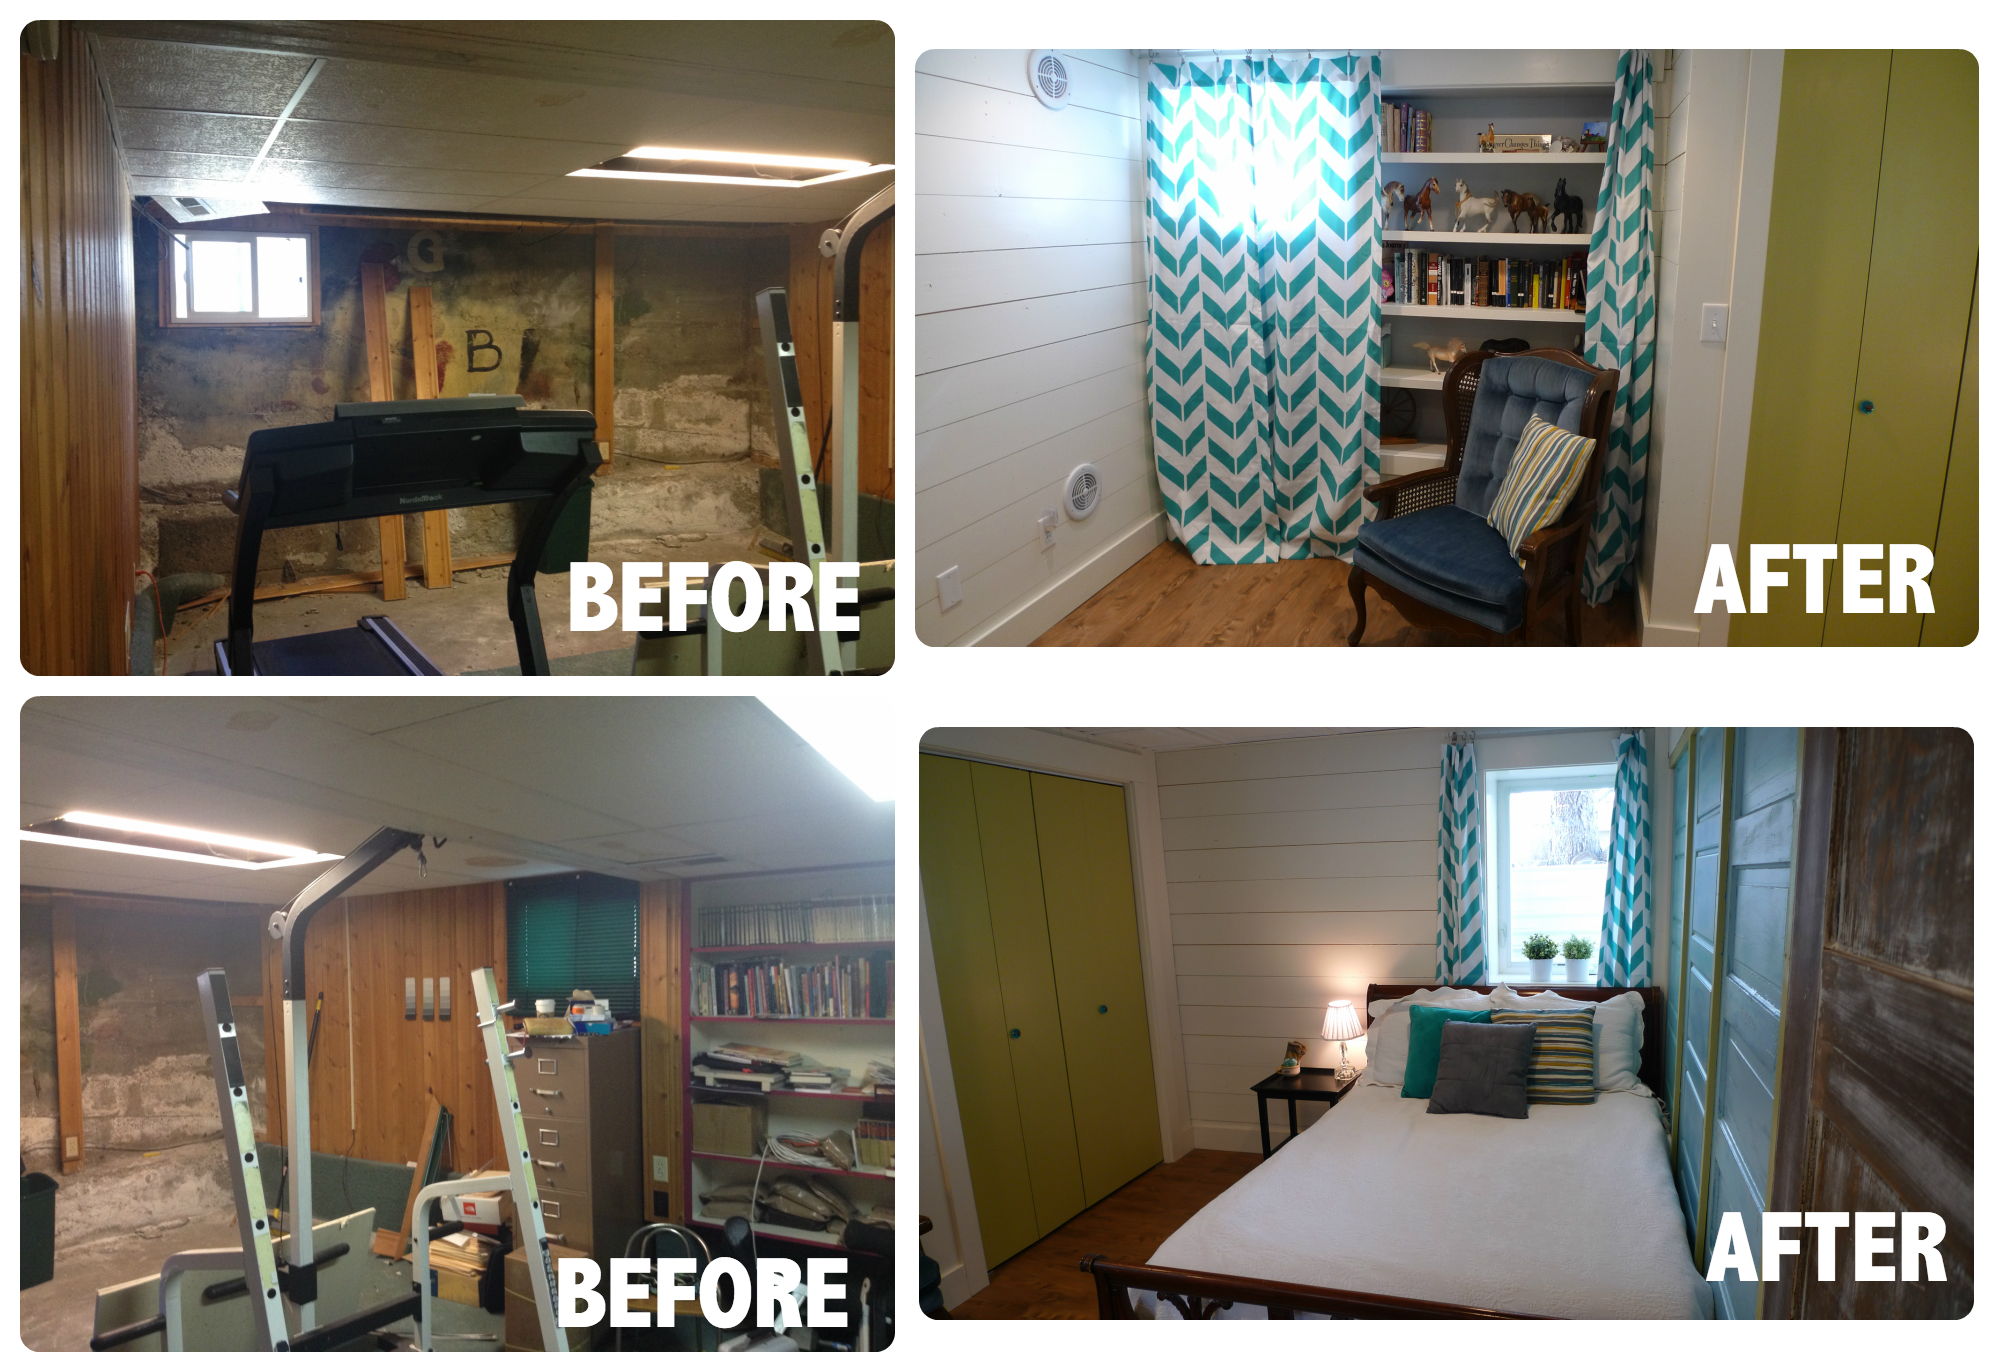 From water damage to basement remodel on a budget!